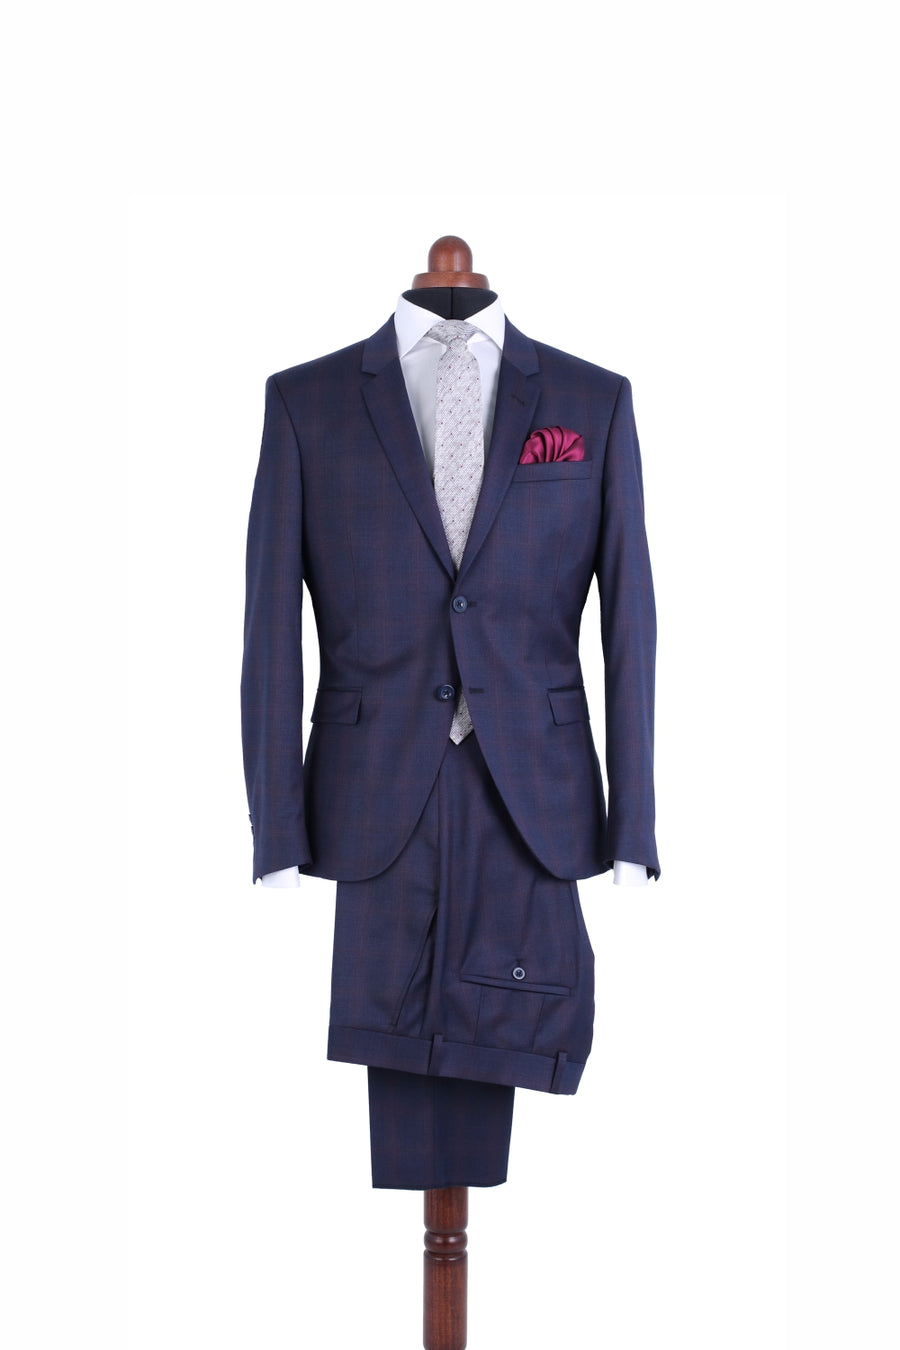 BLUE-RED CHECK SUIT